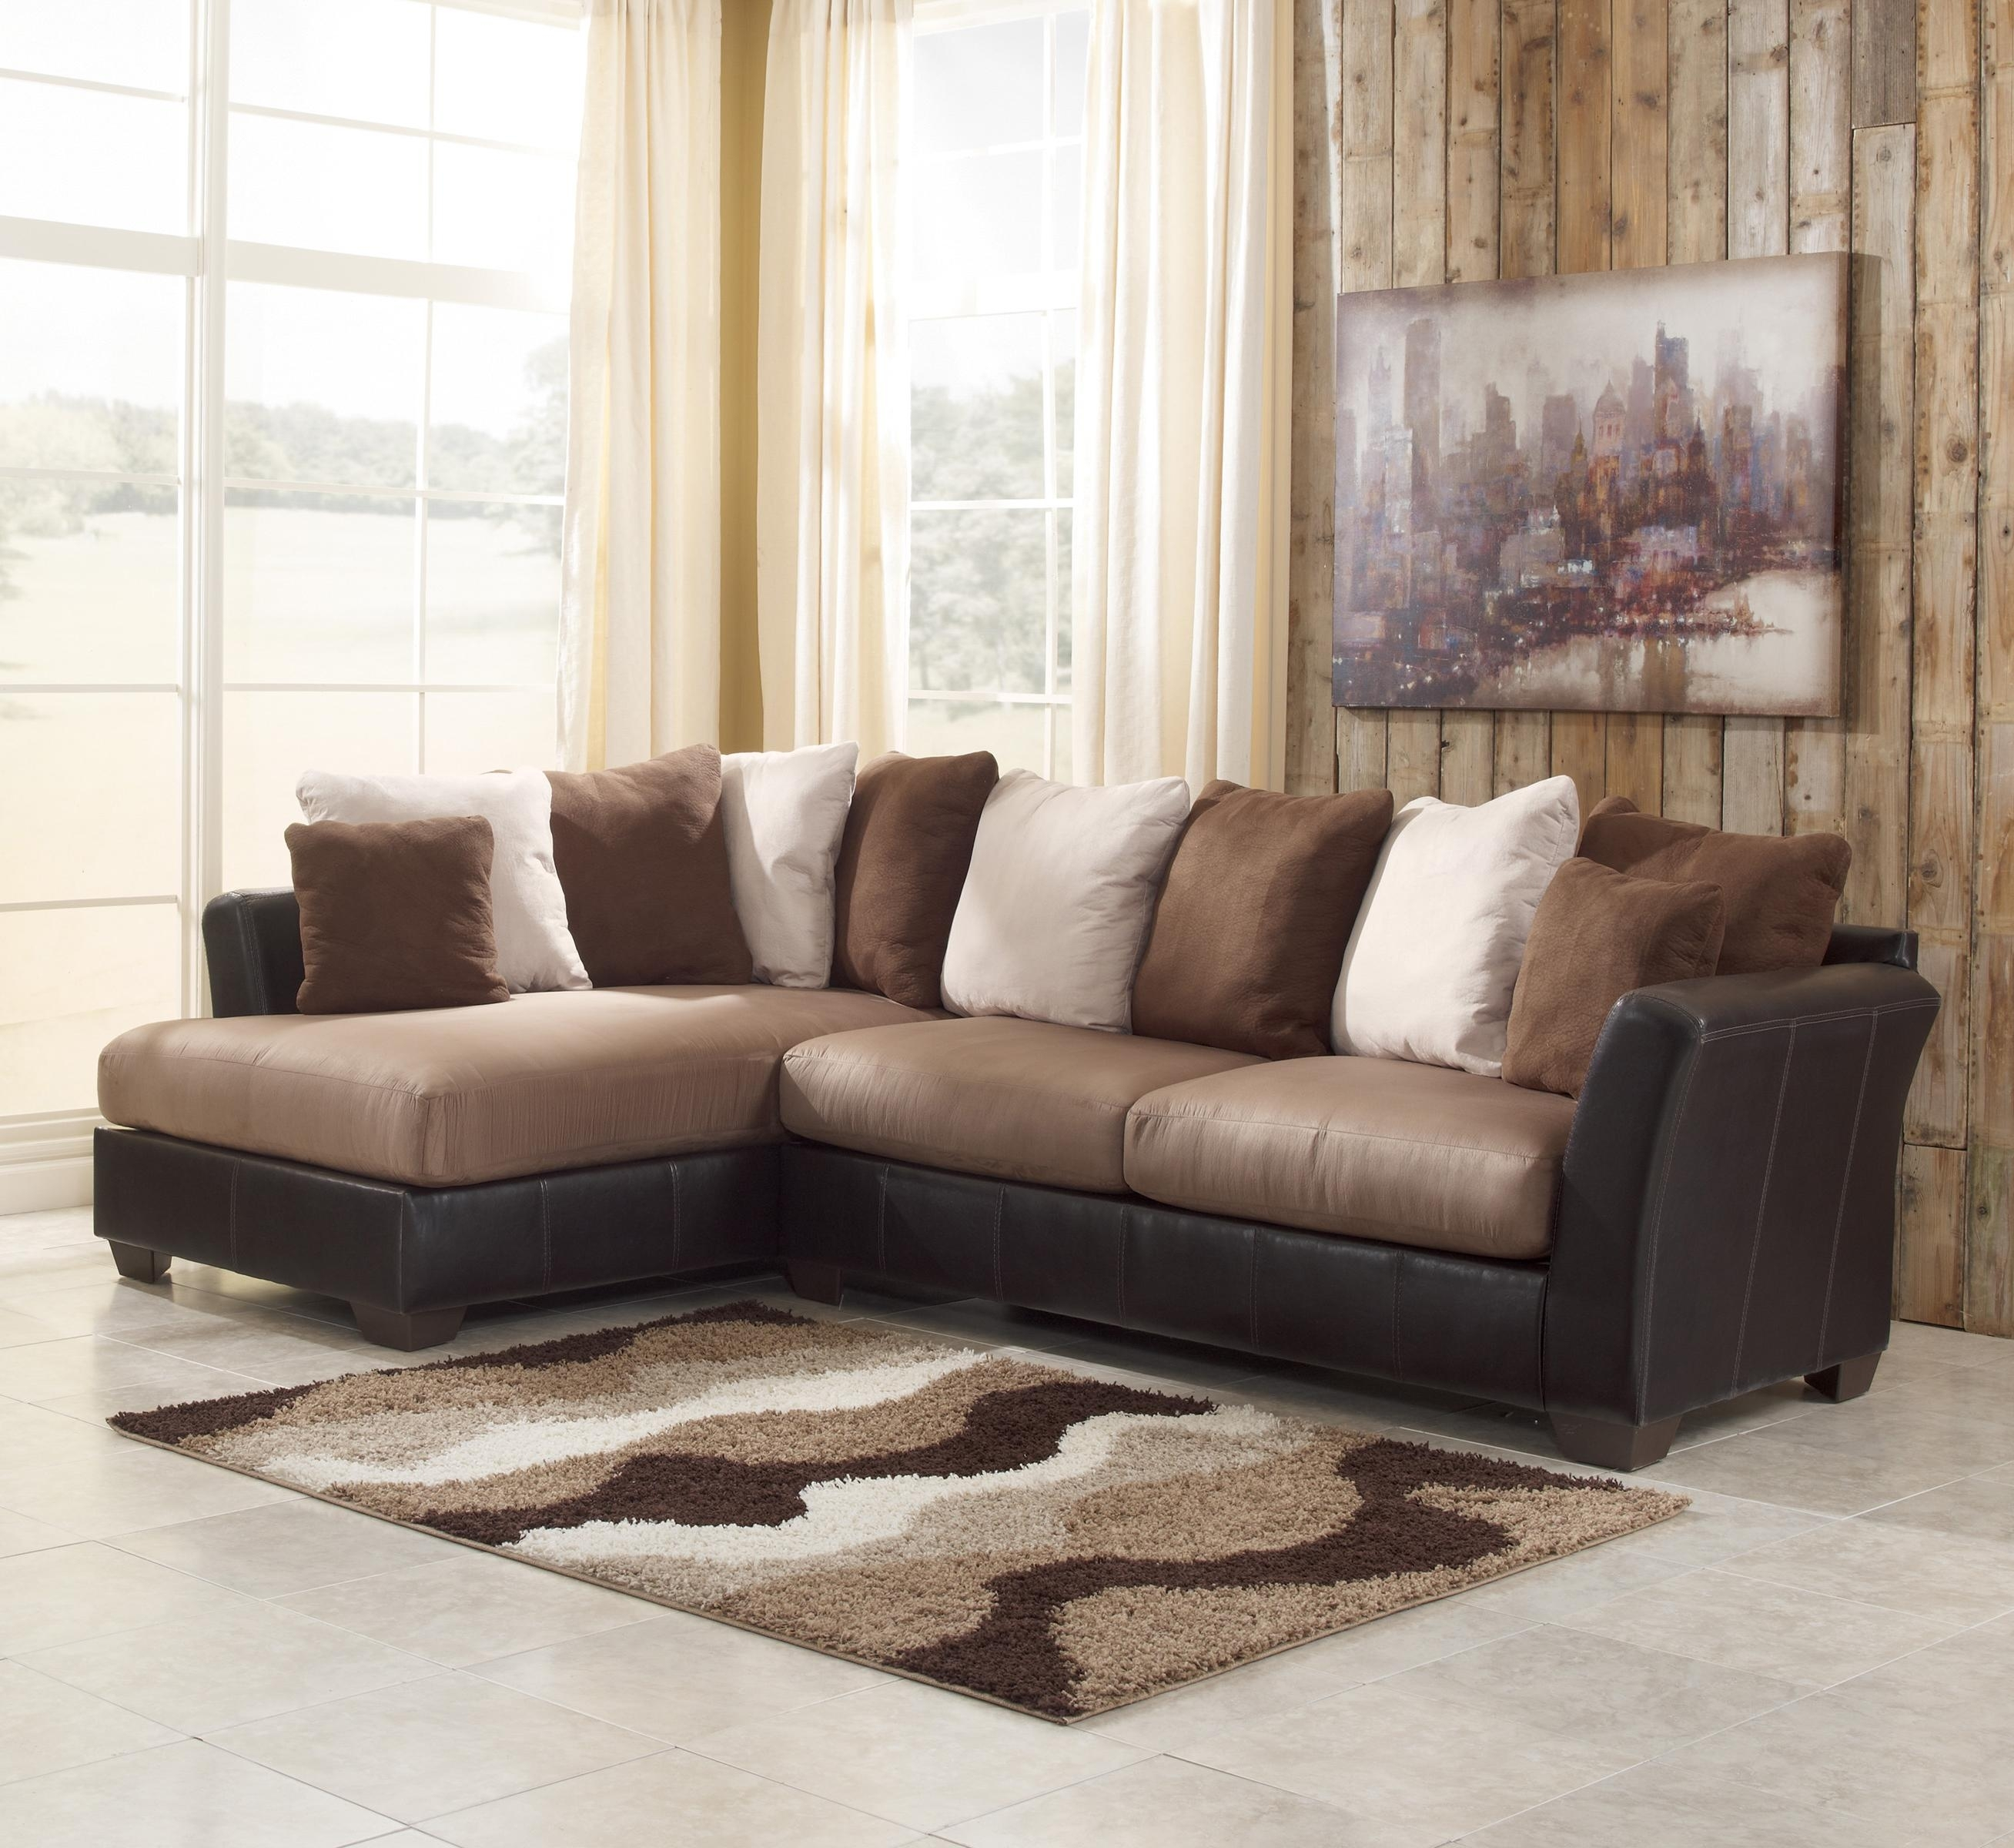 2 Pc Sectional Sofa Chaise | Reviravoltta with Evan 2 Piece Sectionals With Raf Chaise (Image 1 of 30)